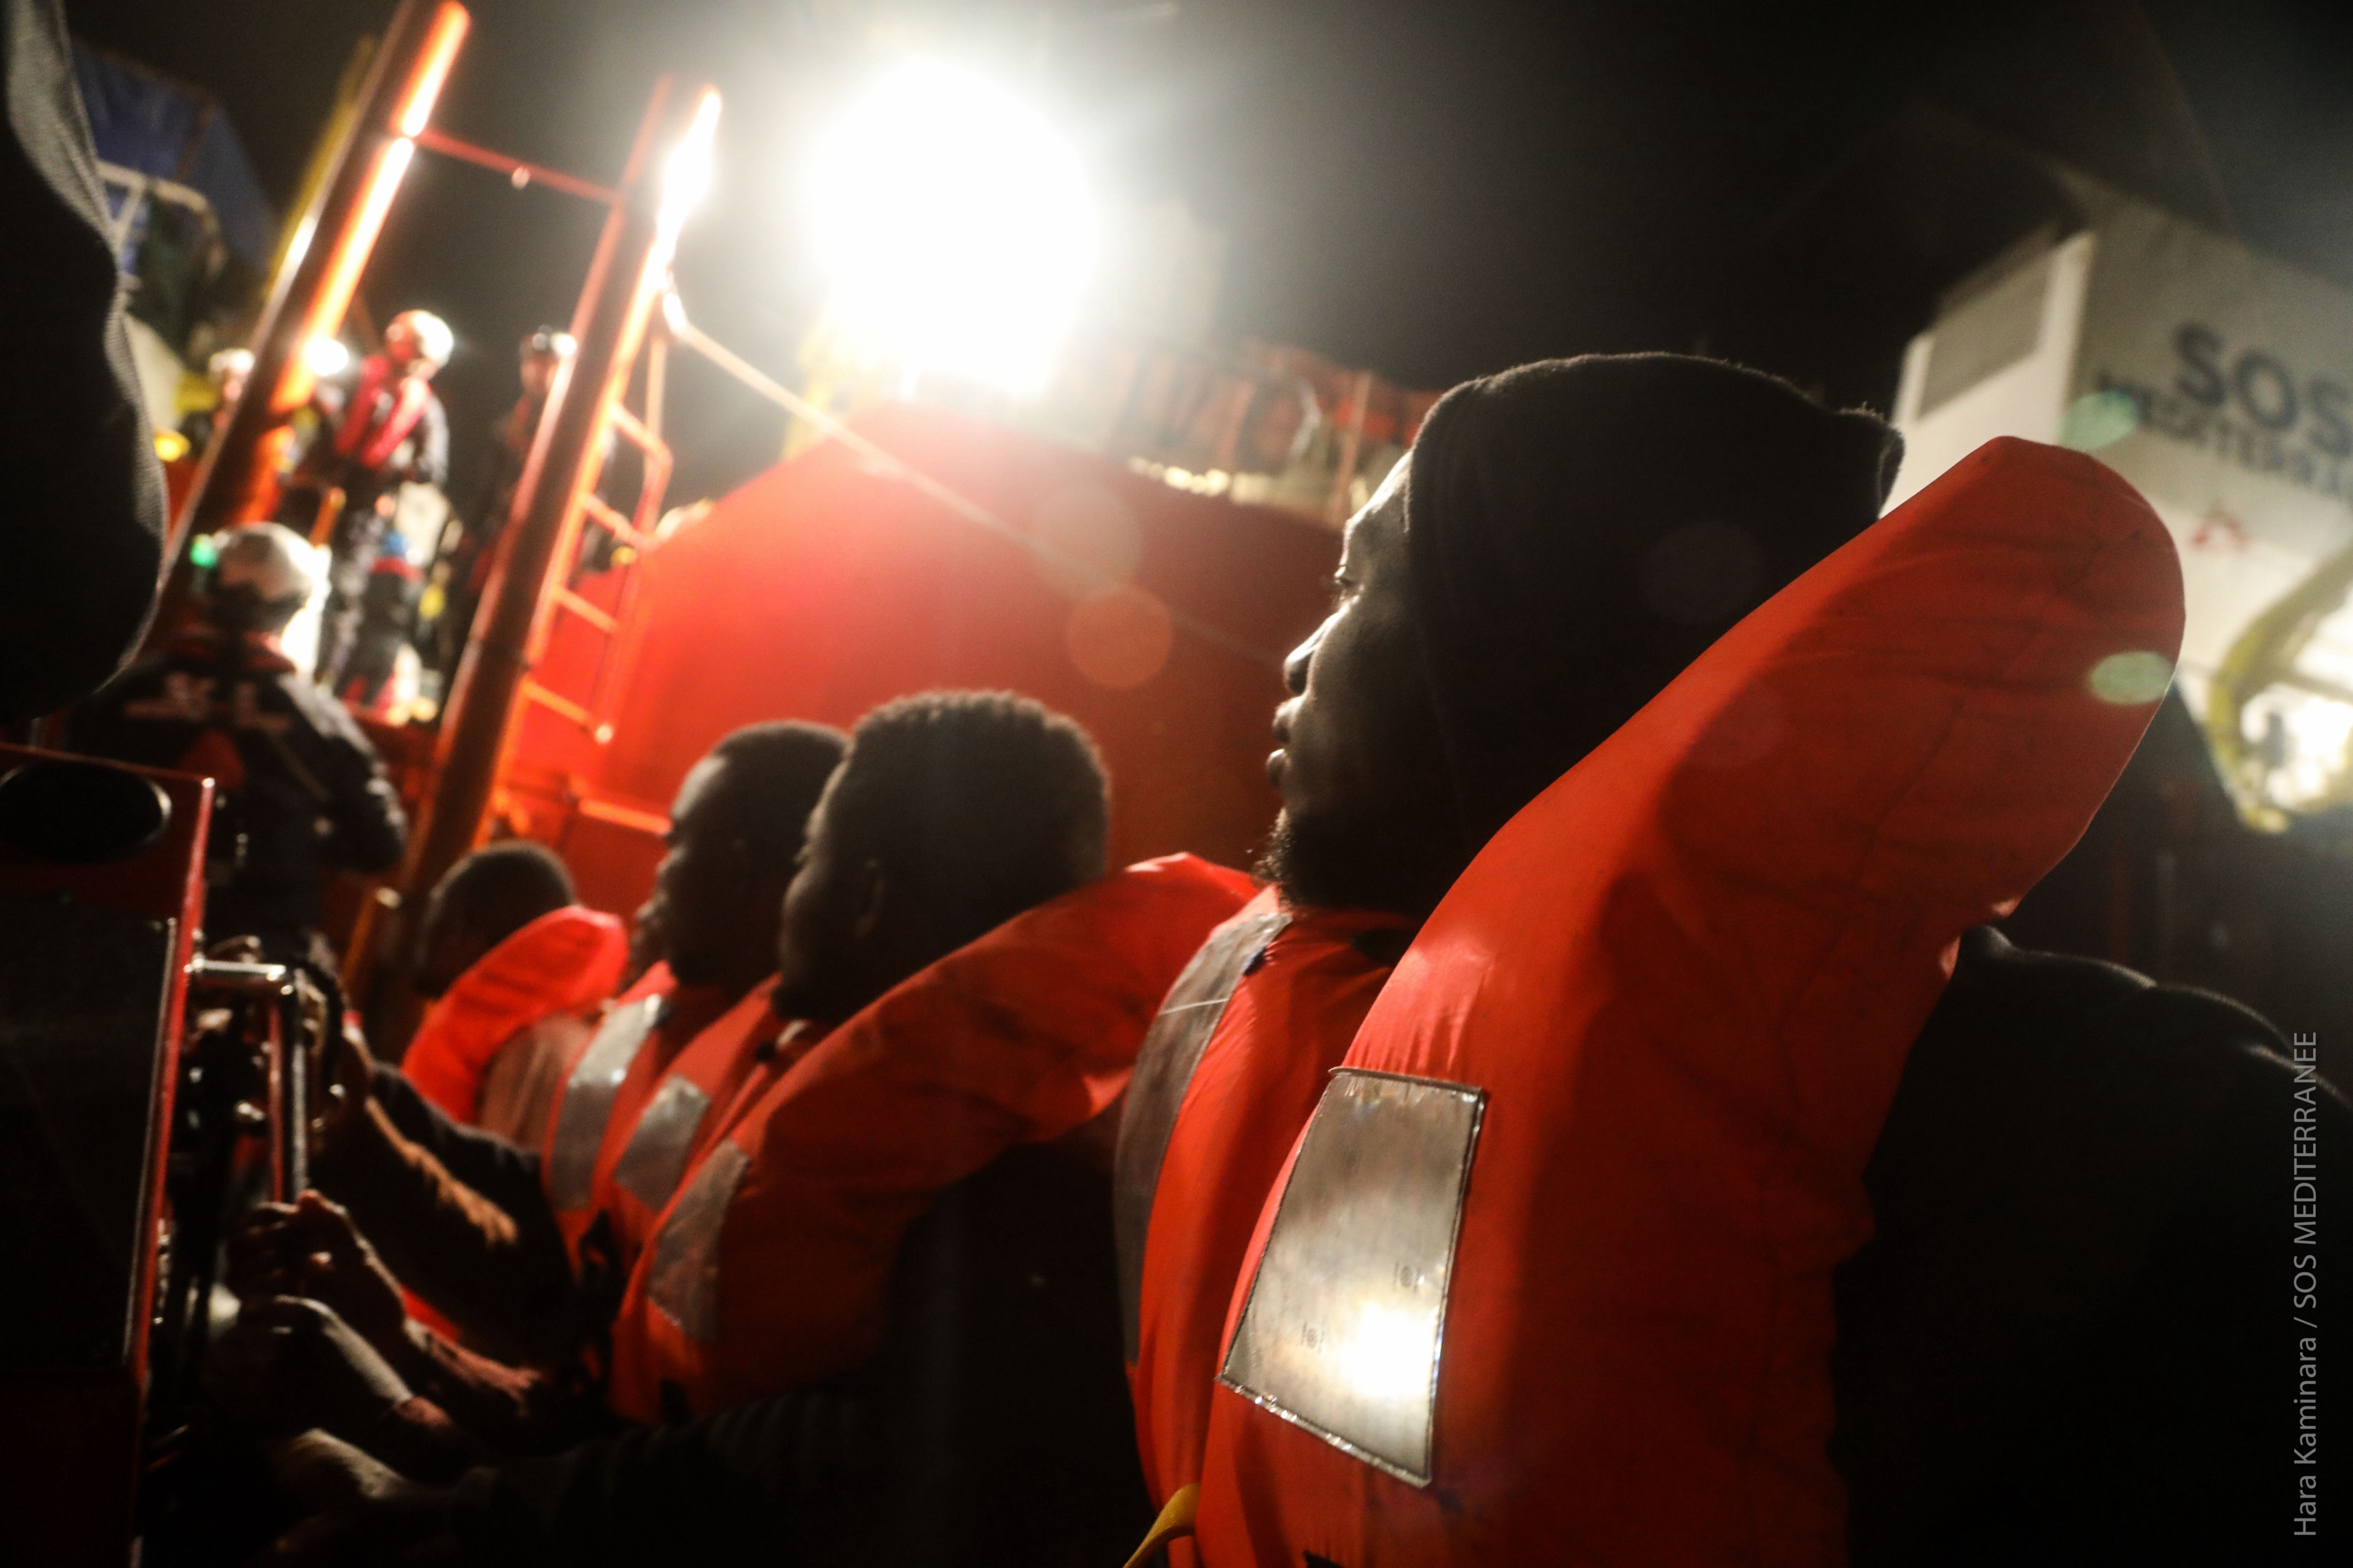 I worked onboard the Aquarius search and rescue ship earlier